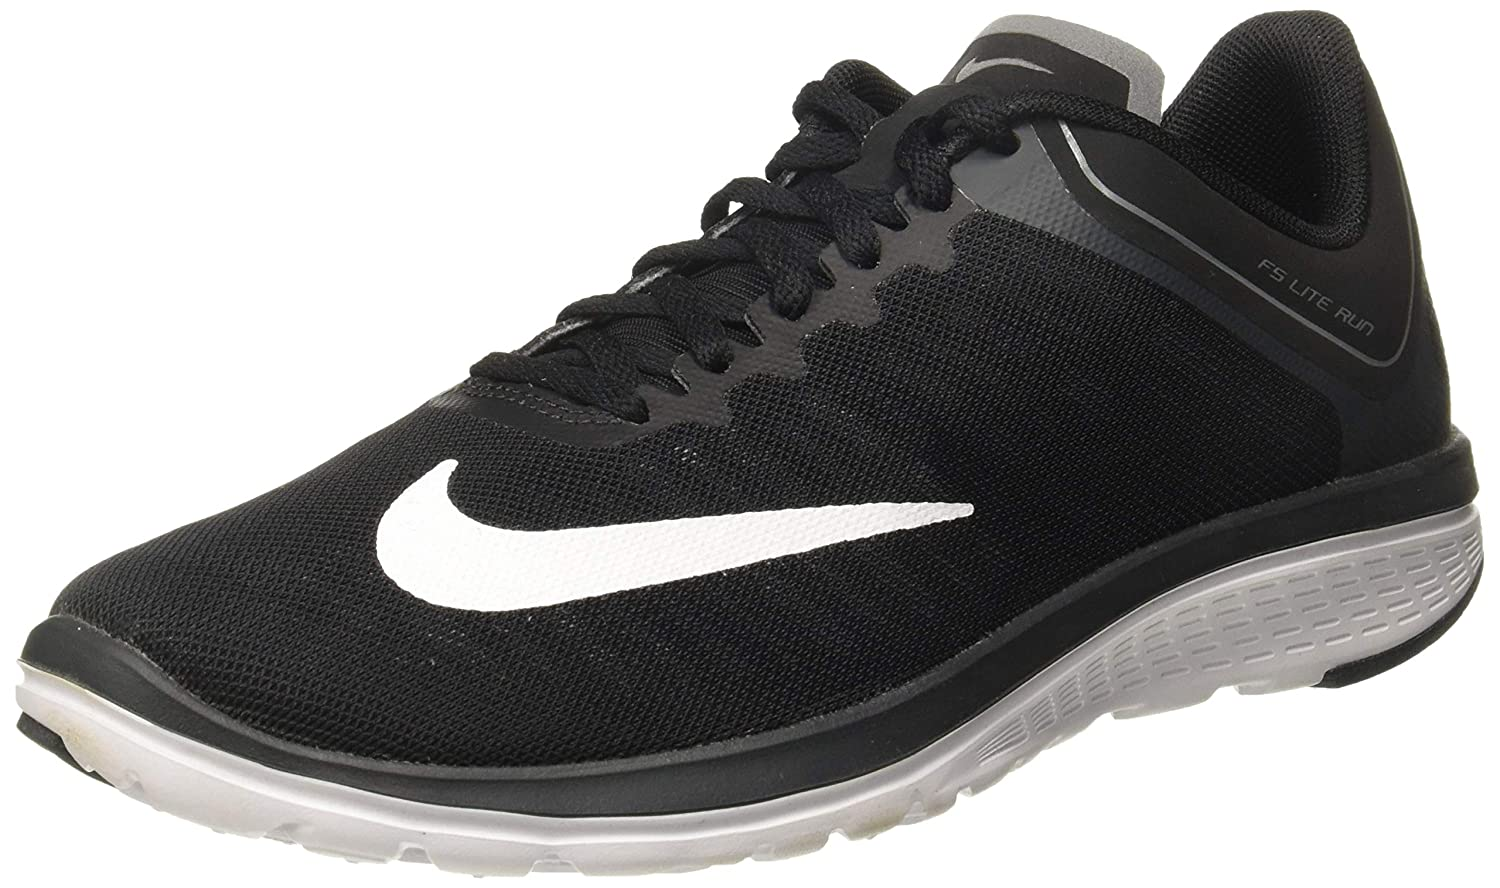 Nike Men s Fs Lite Run 4 Black White-Anthracite Ankle-High Running Shoe – 8.5M